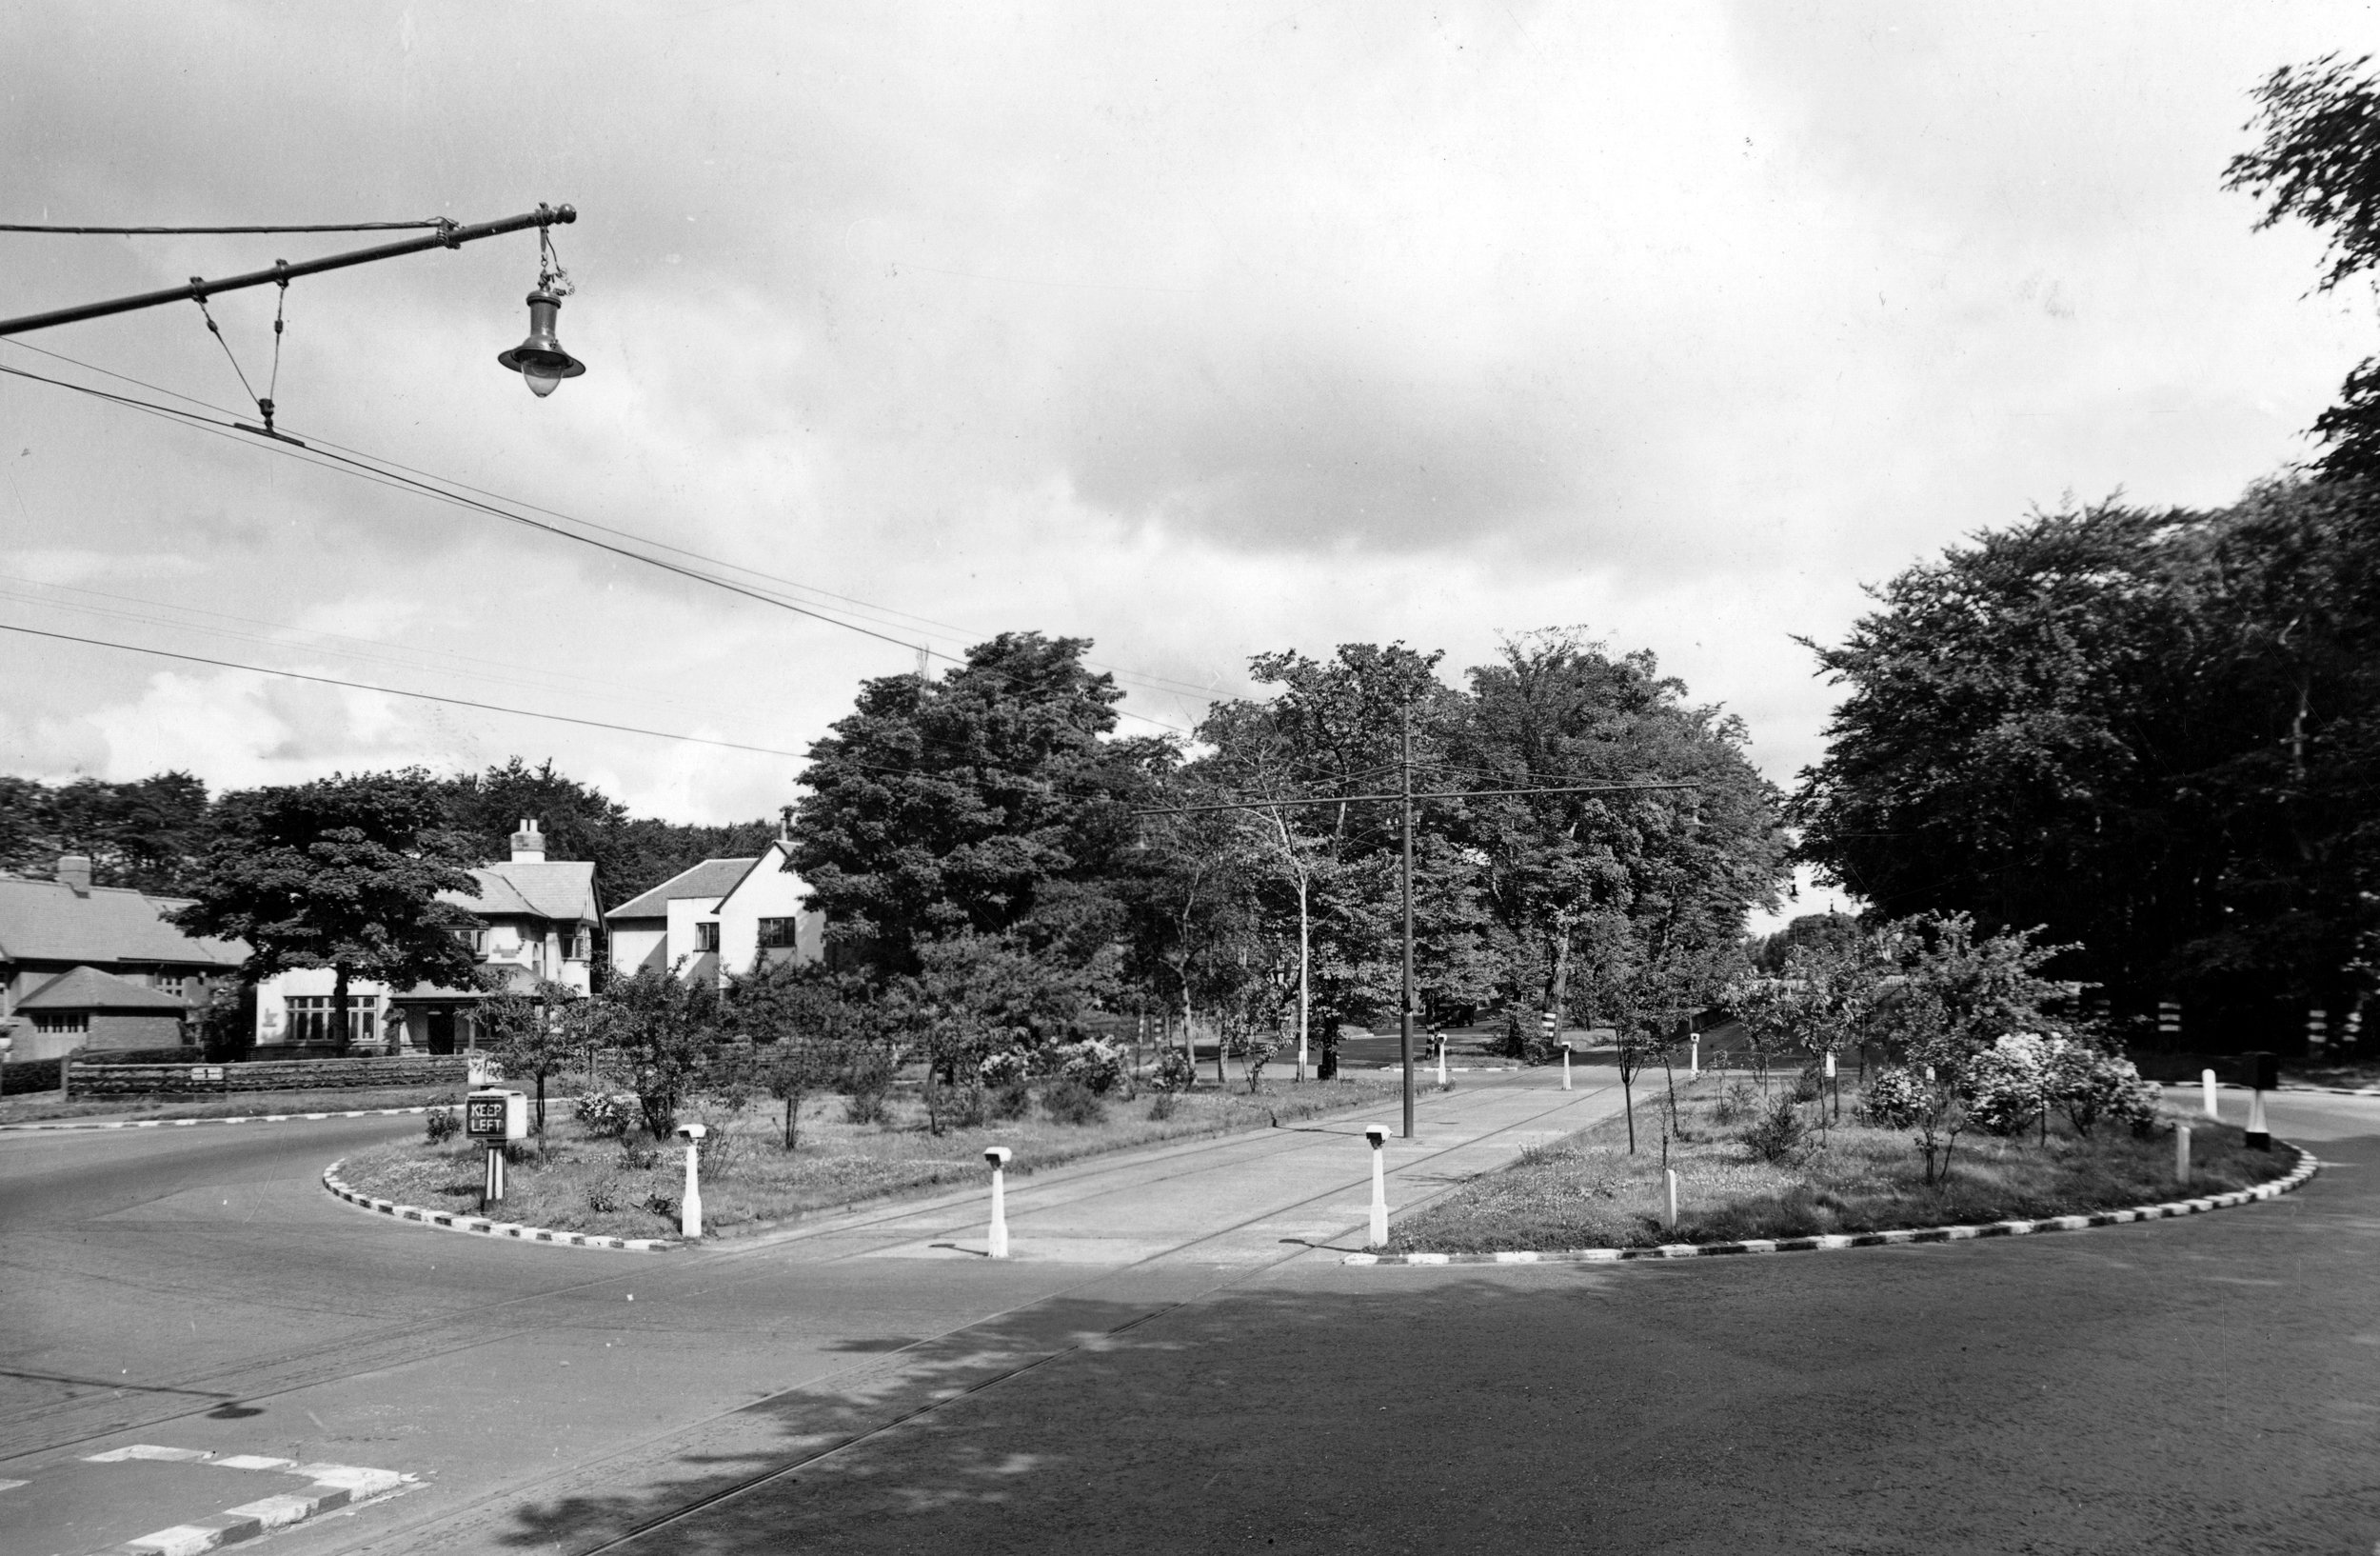 Lawnswood Roundabout / Ring Road